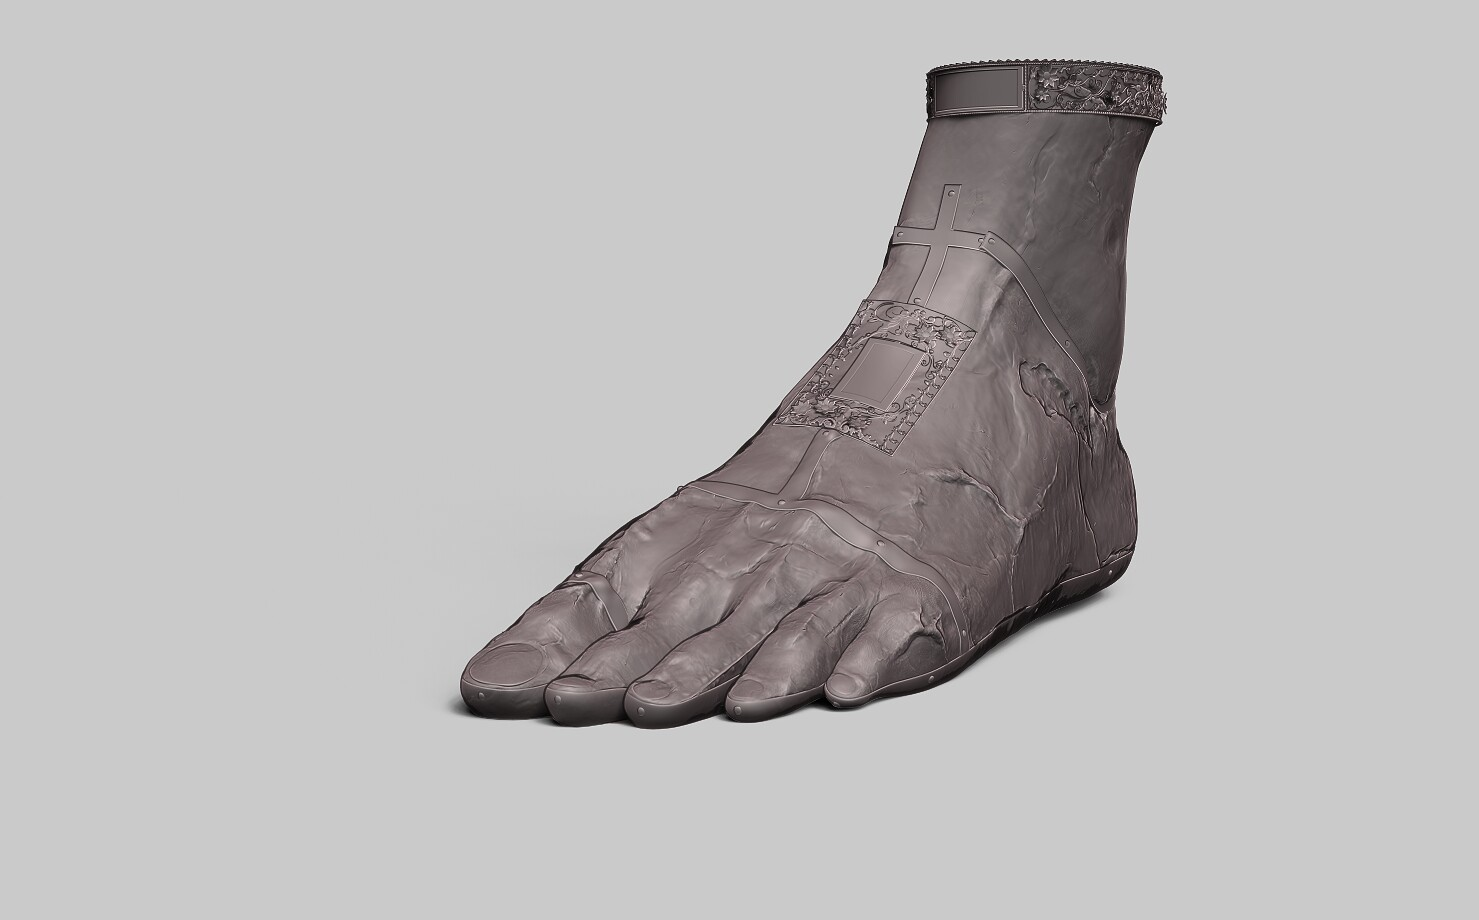 Nimue Foot High Poly